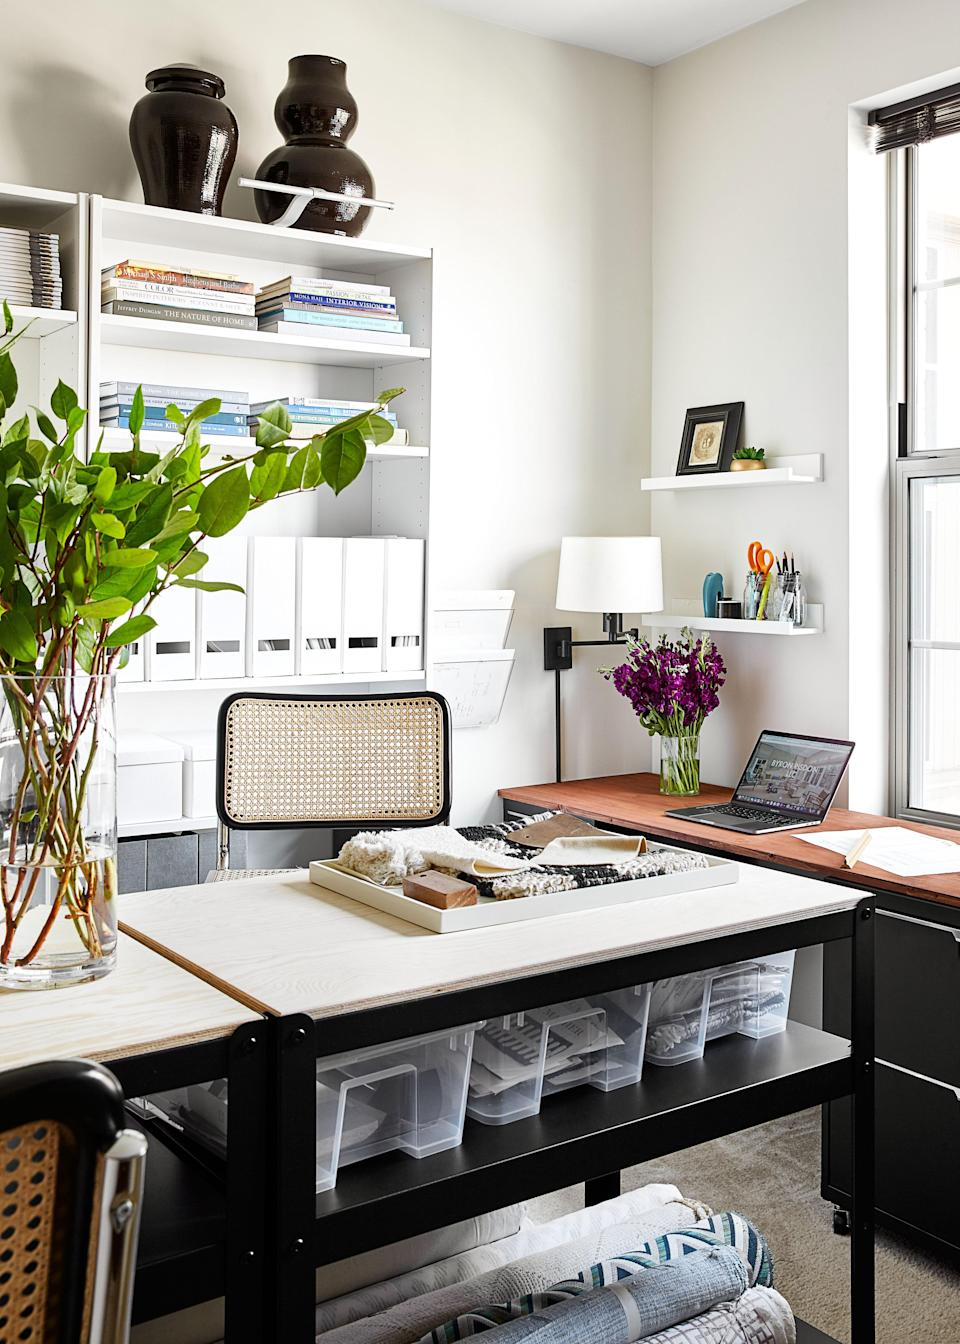 During lockdown, Risdon converted his second bedroom into an office. Installing shelving from IKEA and filing cabinets from CB2, the designer was able to stay organized during an upswing in his business. A rolling cart from IKEA offers additional storage. Swing-arm lamps from Hinson bring in a flexible light source. Like the vessels in the dining area, the vases in the office are from Roy Hamilton Studios.